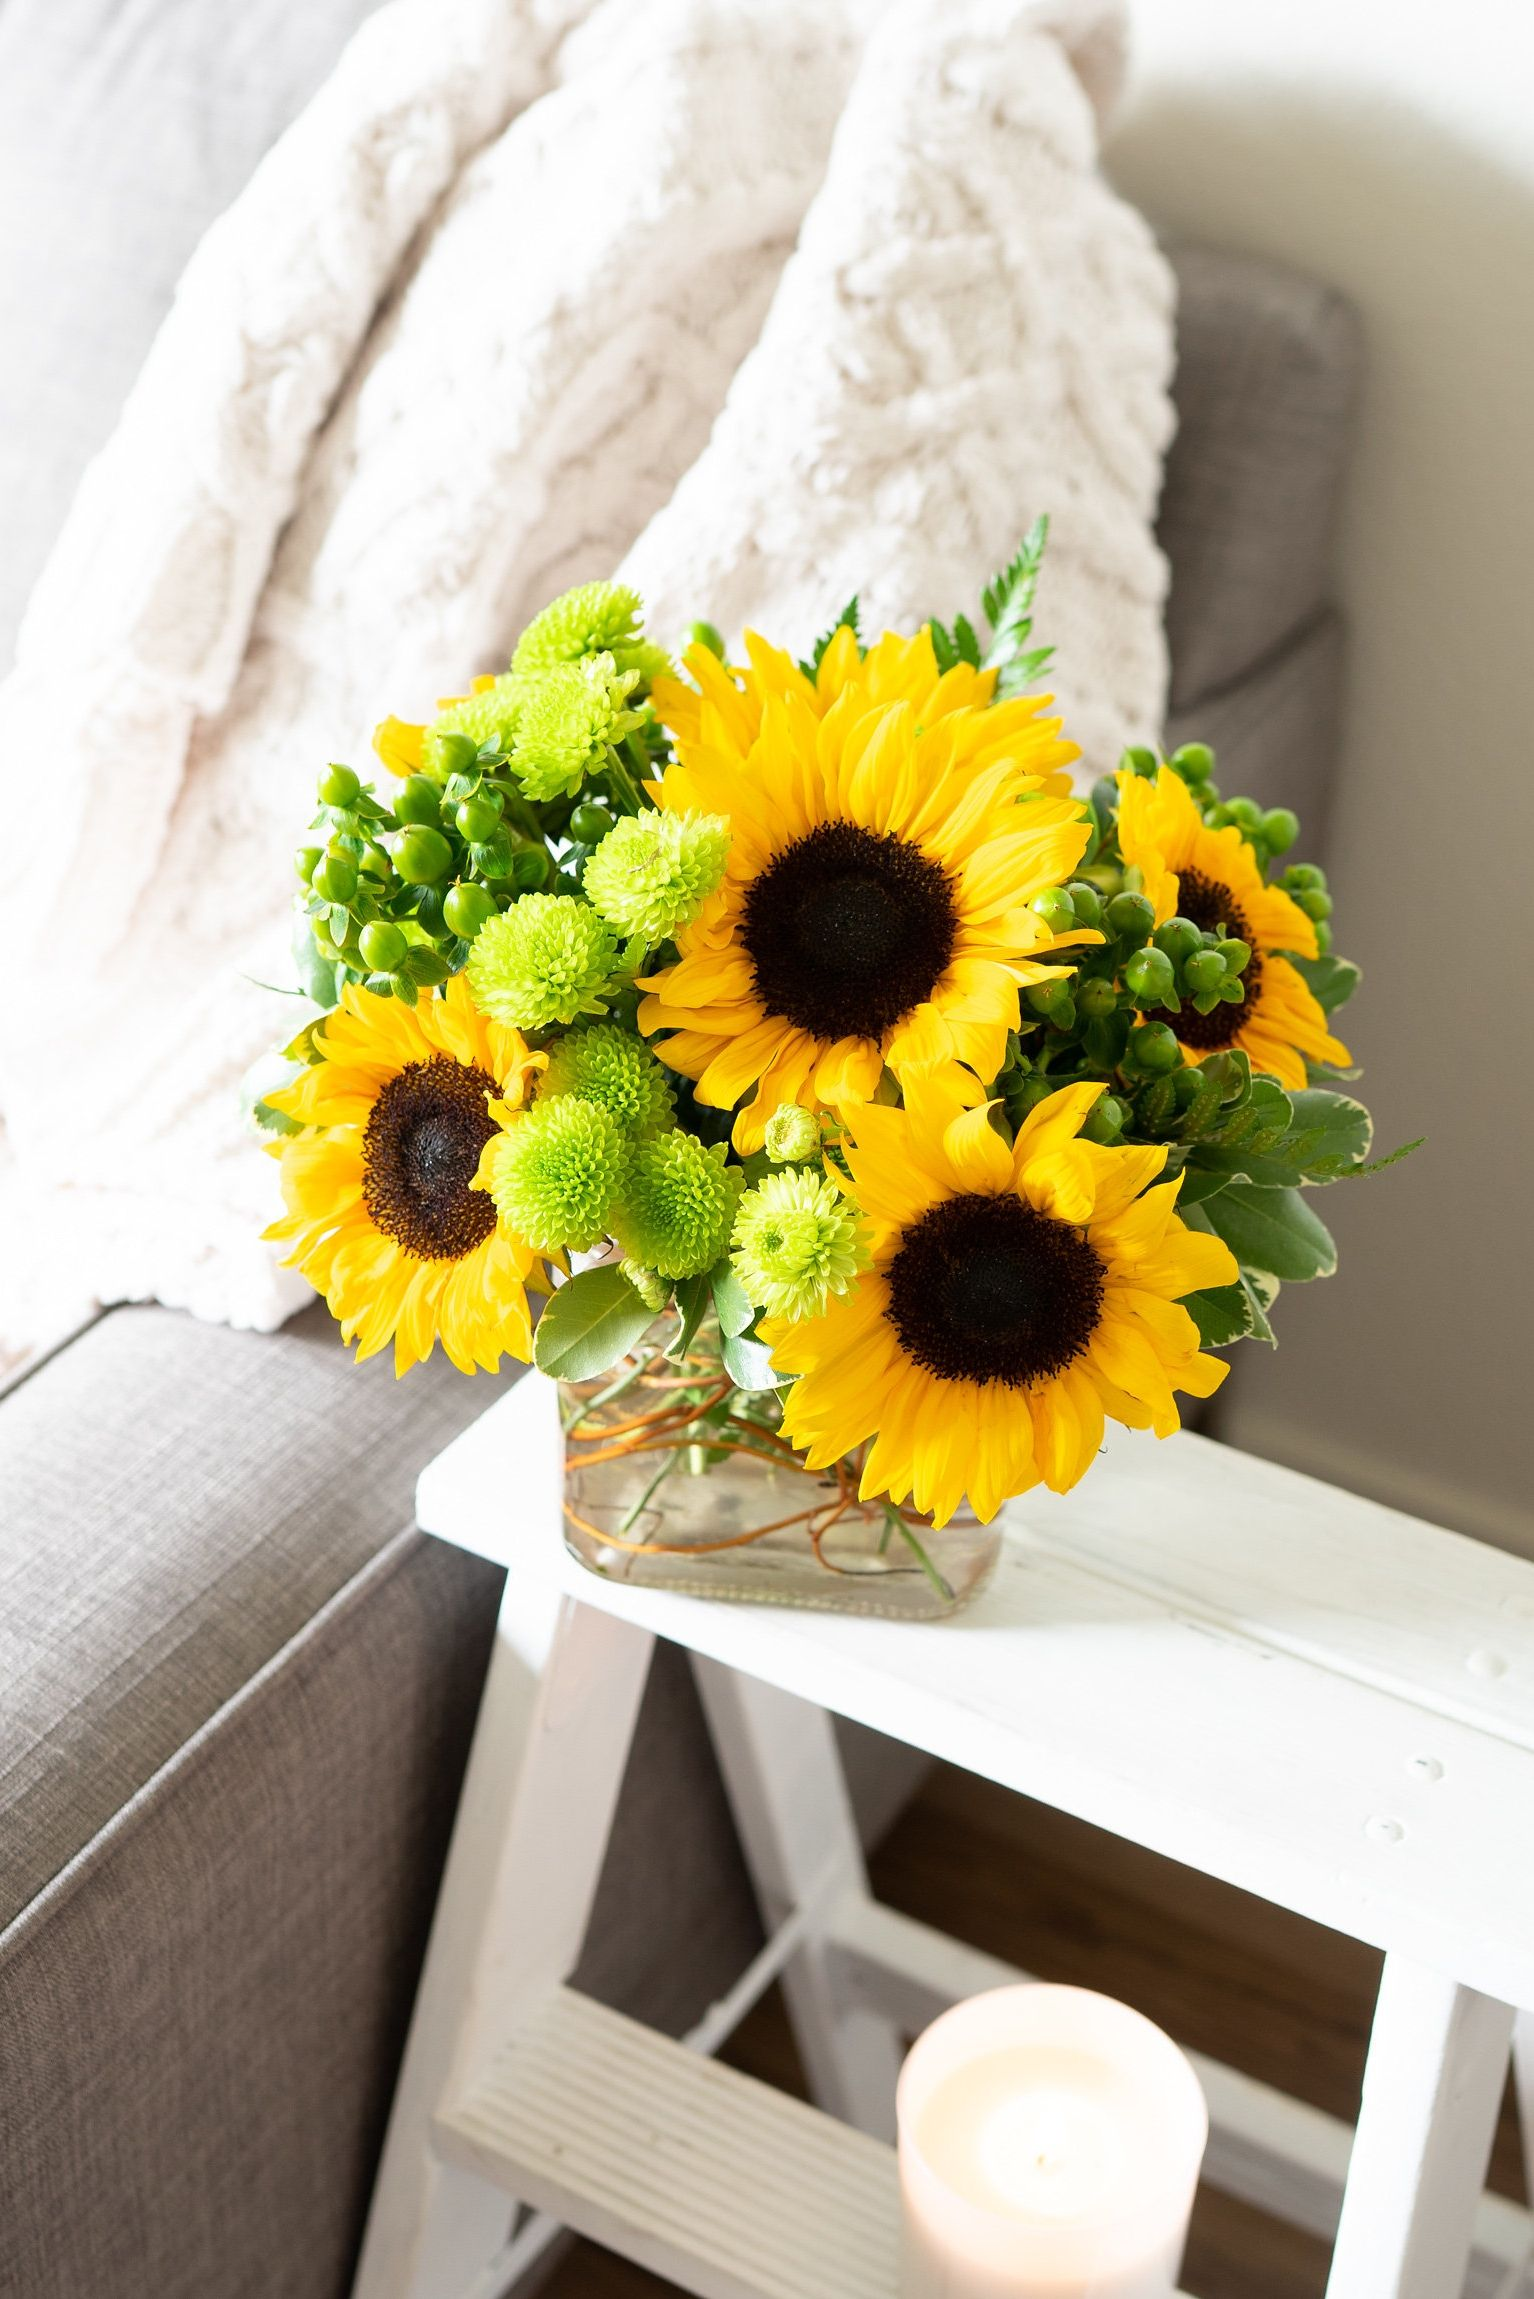 Sunflower Surprise at From You Flowers in 2020 Flowers